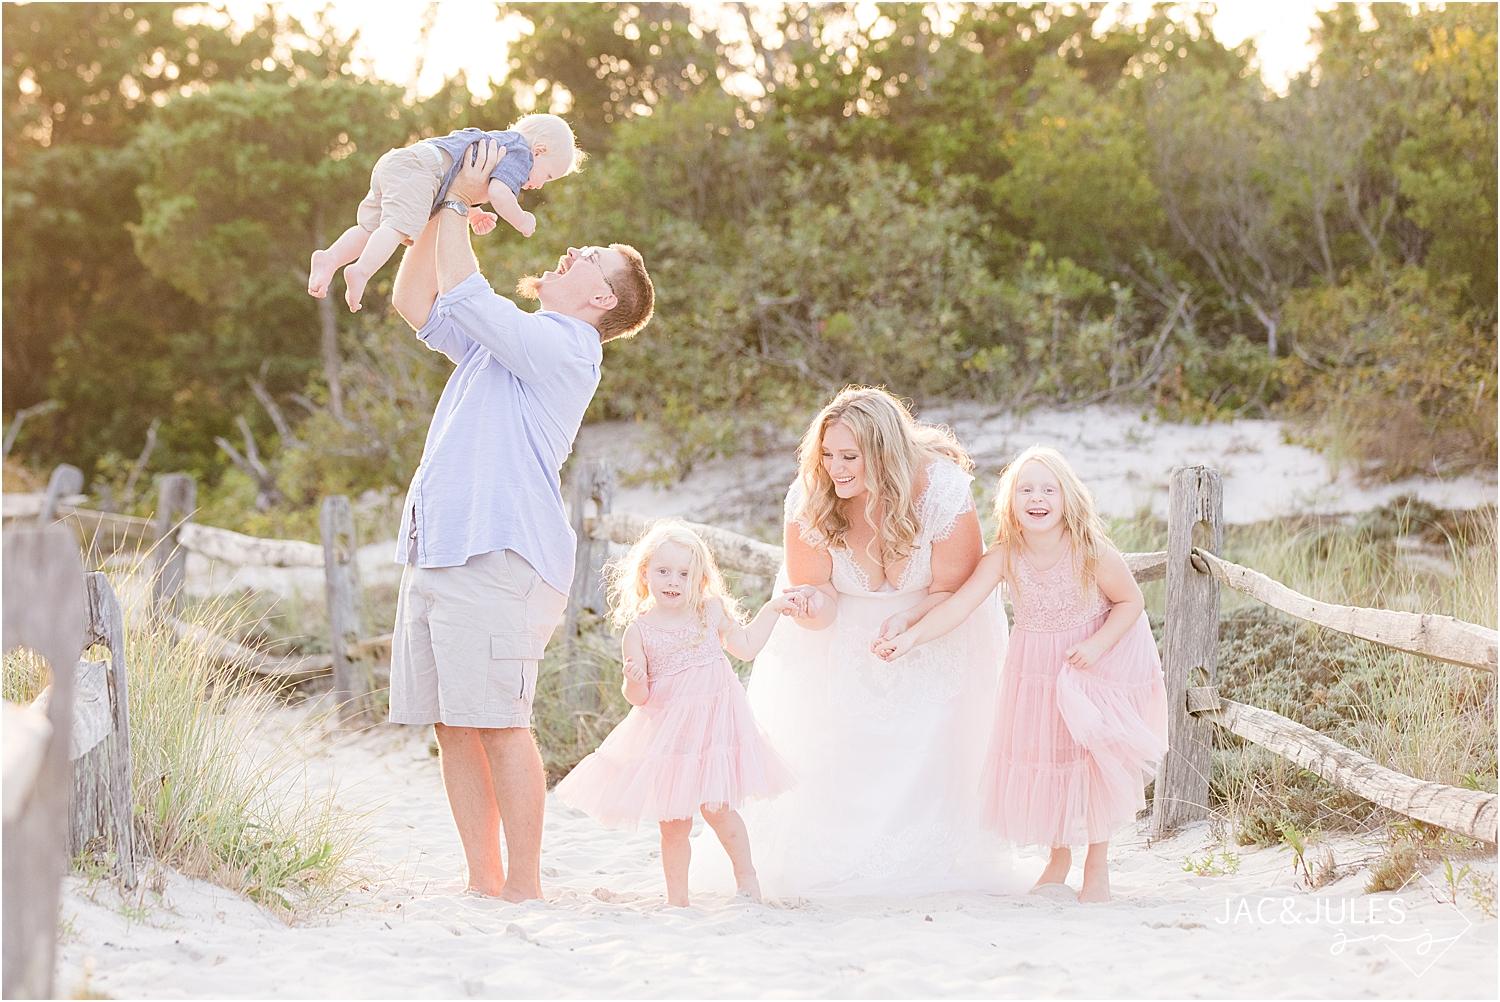 family photo at island beach state park with girls in flowing dresses in natural light at sunset by jacnjules